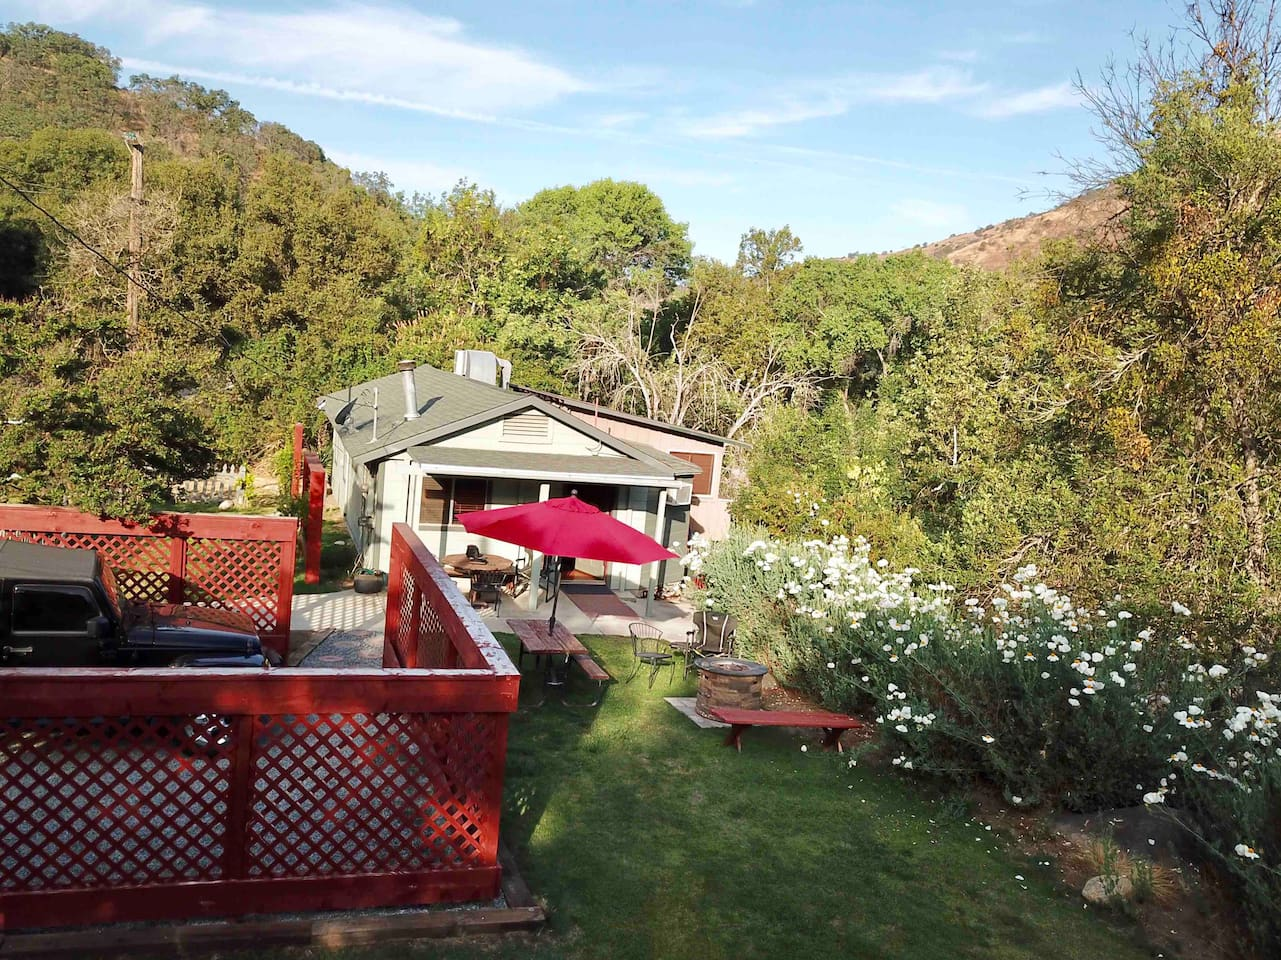 The Kaweah Cabin is just off the Sierra Highway. (2 lane road) just 1 & 1/2 miles from the Park Entrance Gate.  The river below can be heard rushing by.  BBQ, fire pit, surrounded by greenery. Family friendly fun.